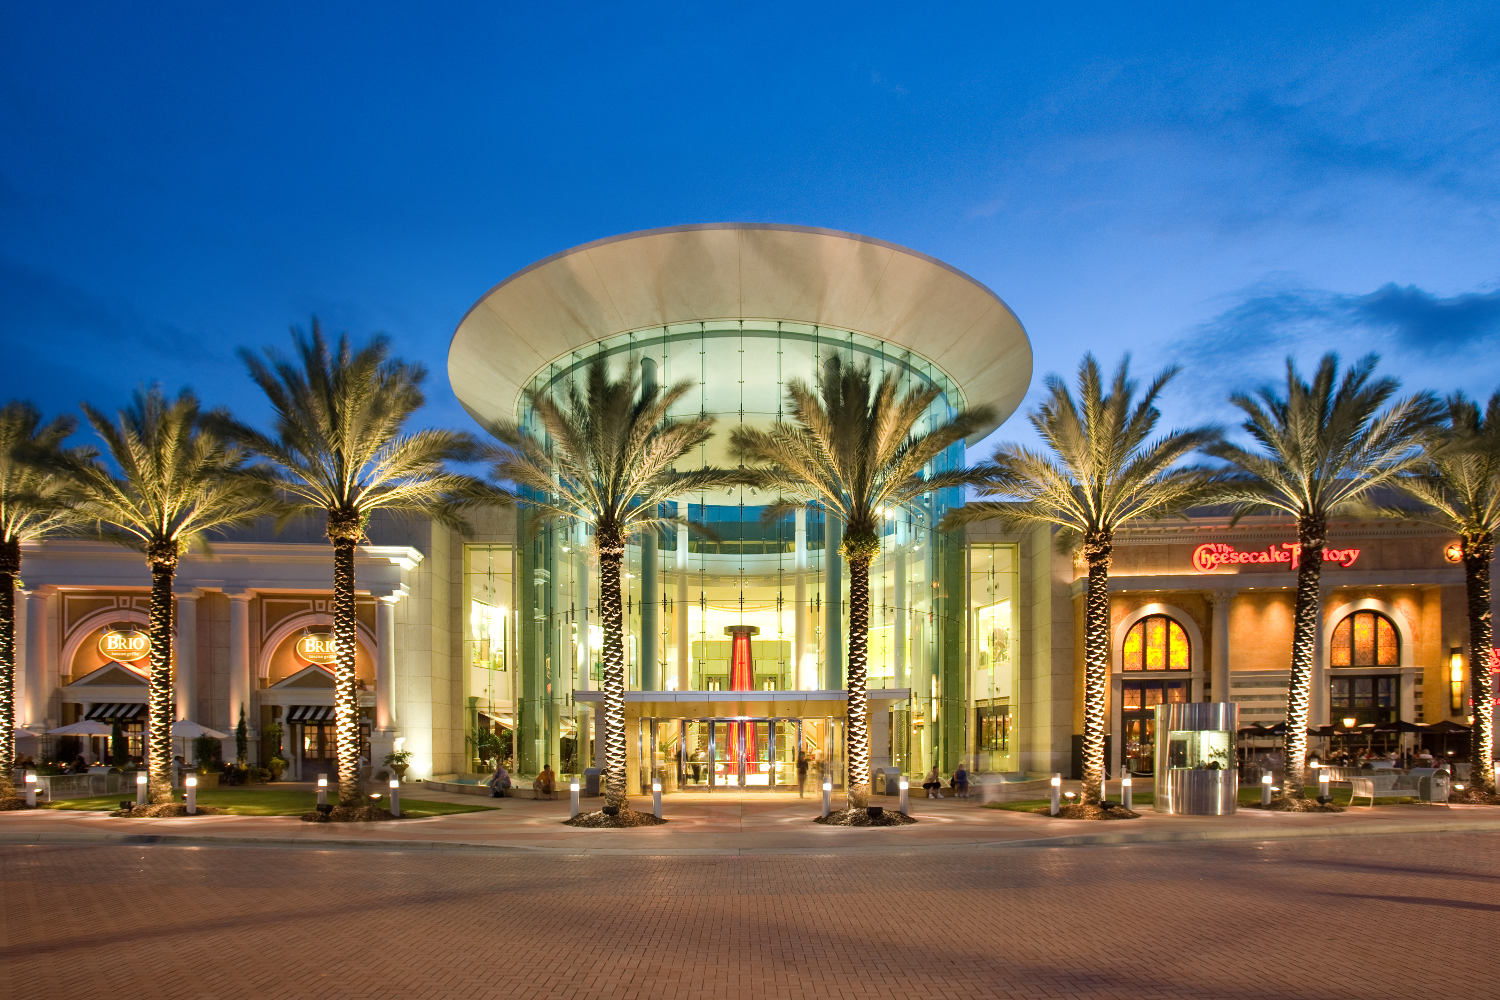 The Mall at Millenia is the centerpiece of a 5 million square foot development centrally located just one mile north of the intersection of I-4 (the Orlando metro area's major north/south arterial) and .